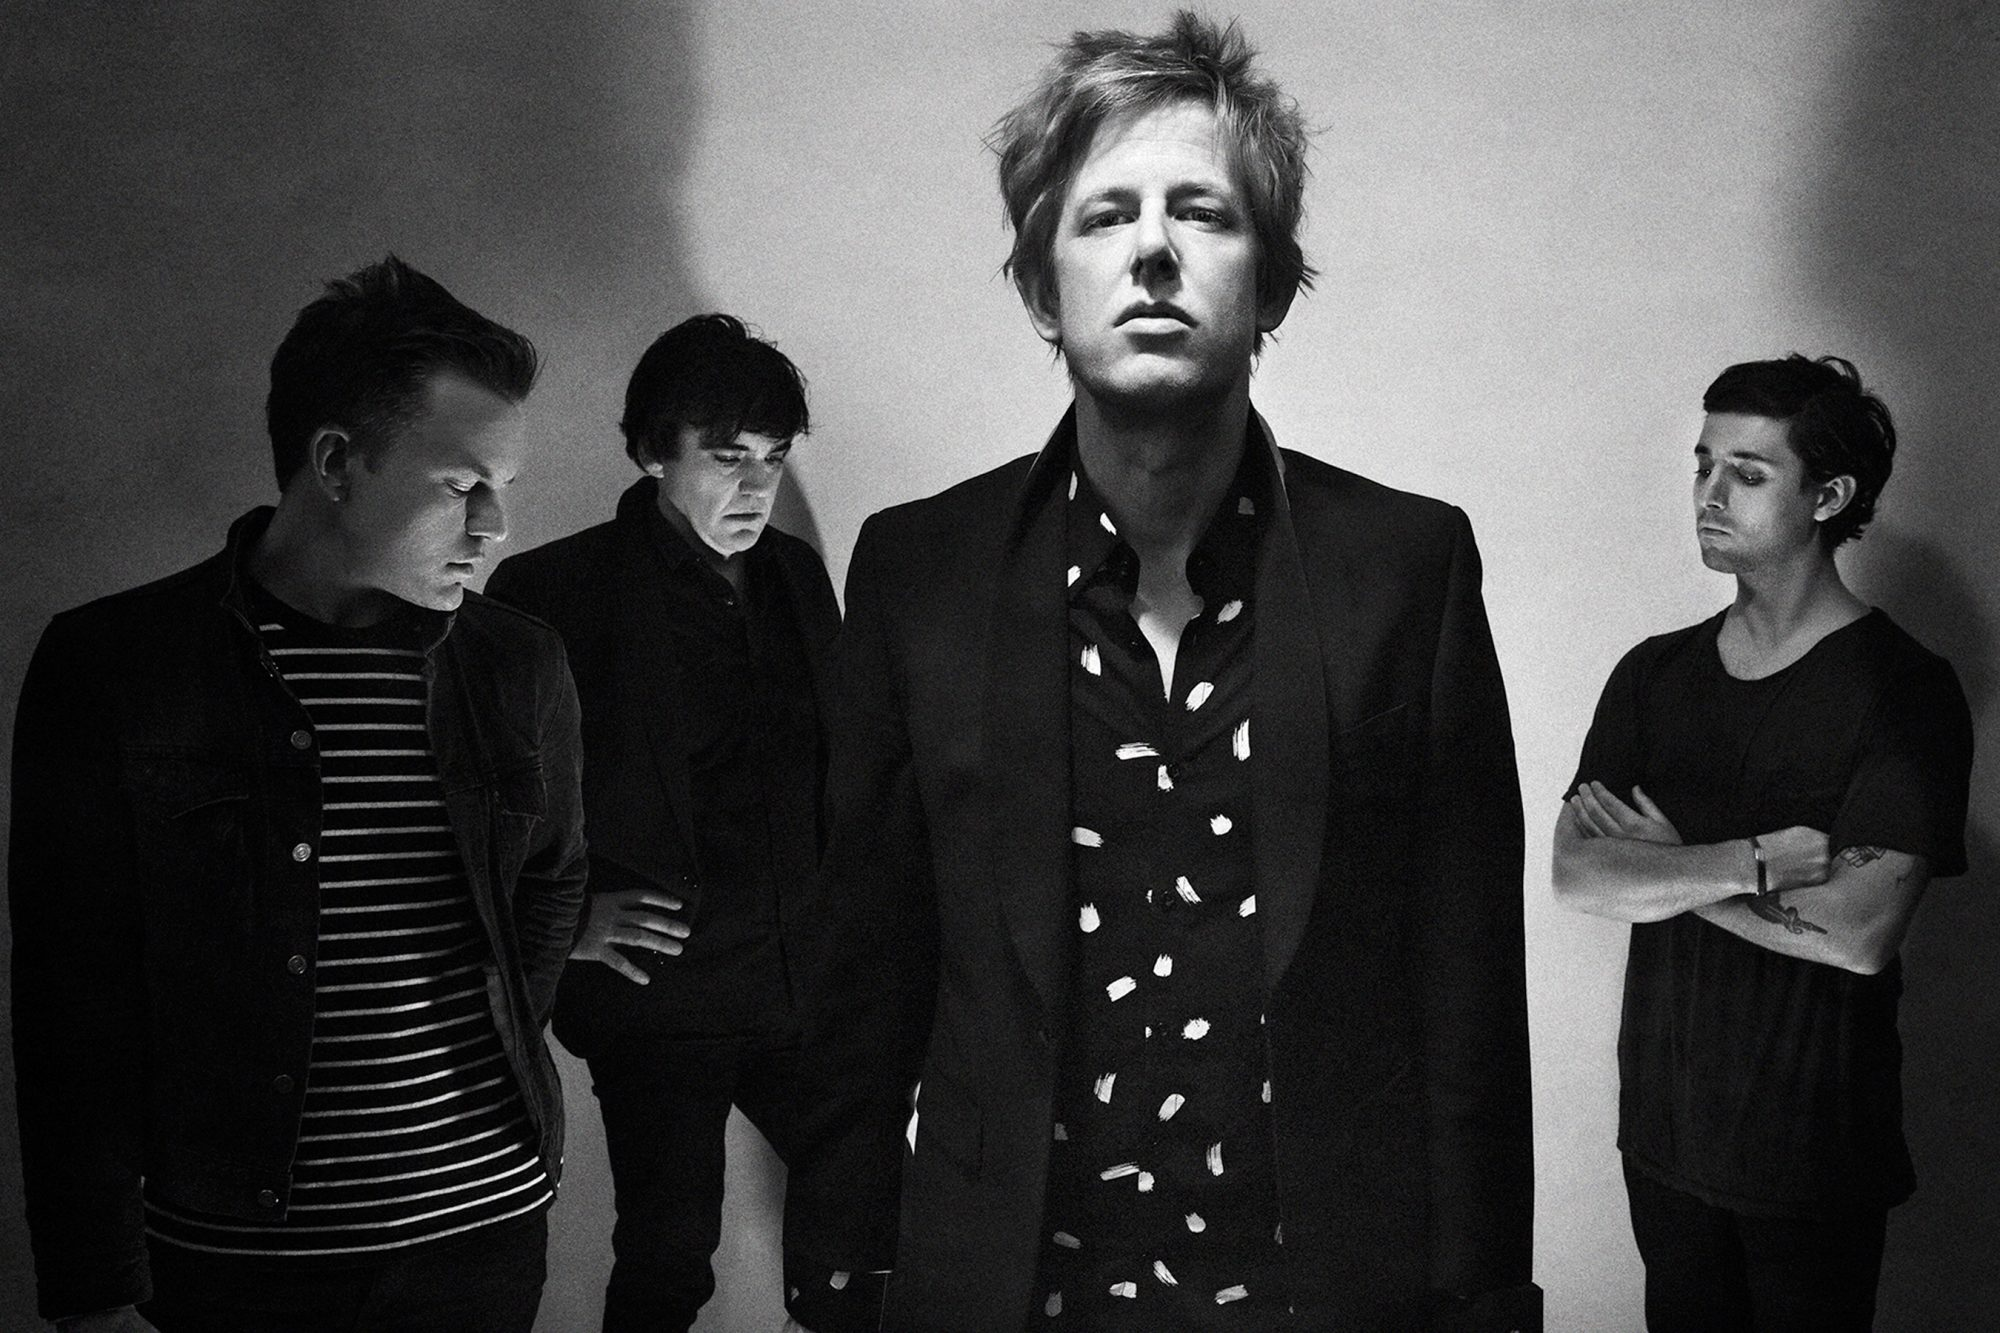 Spoon new album Hot Thoughts